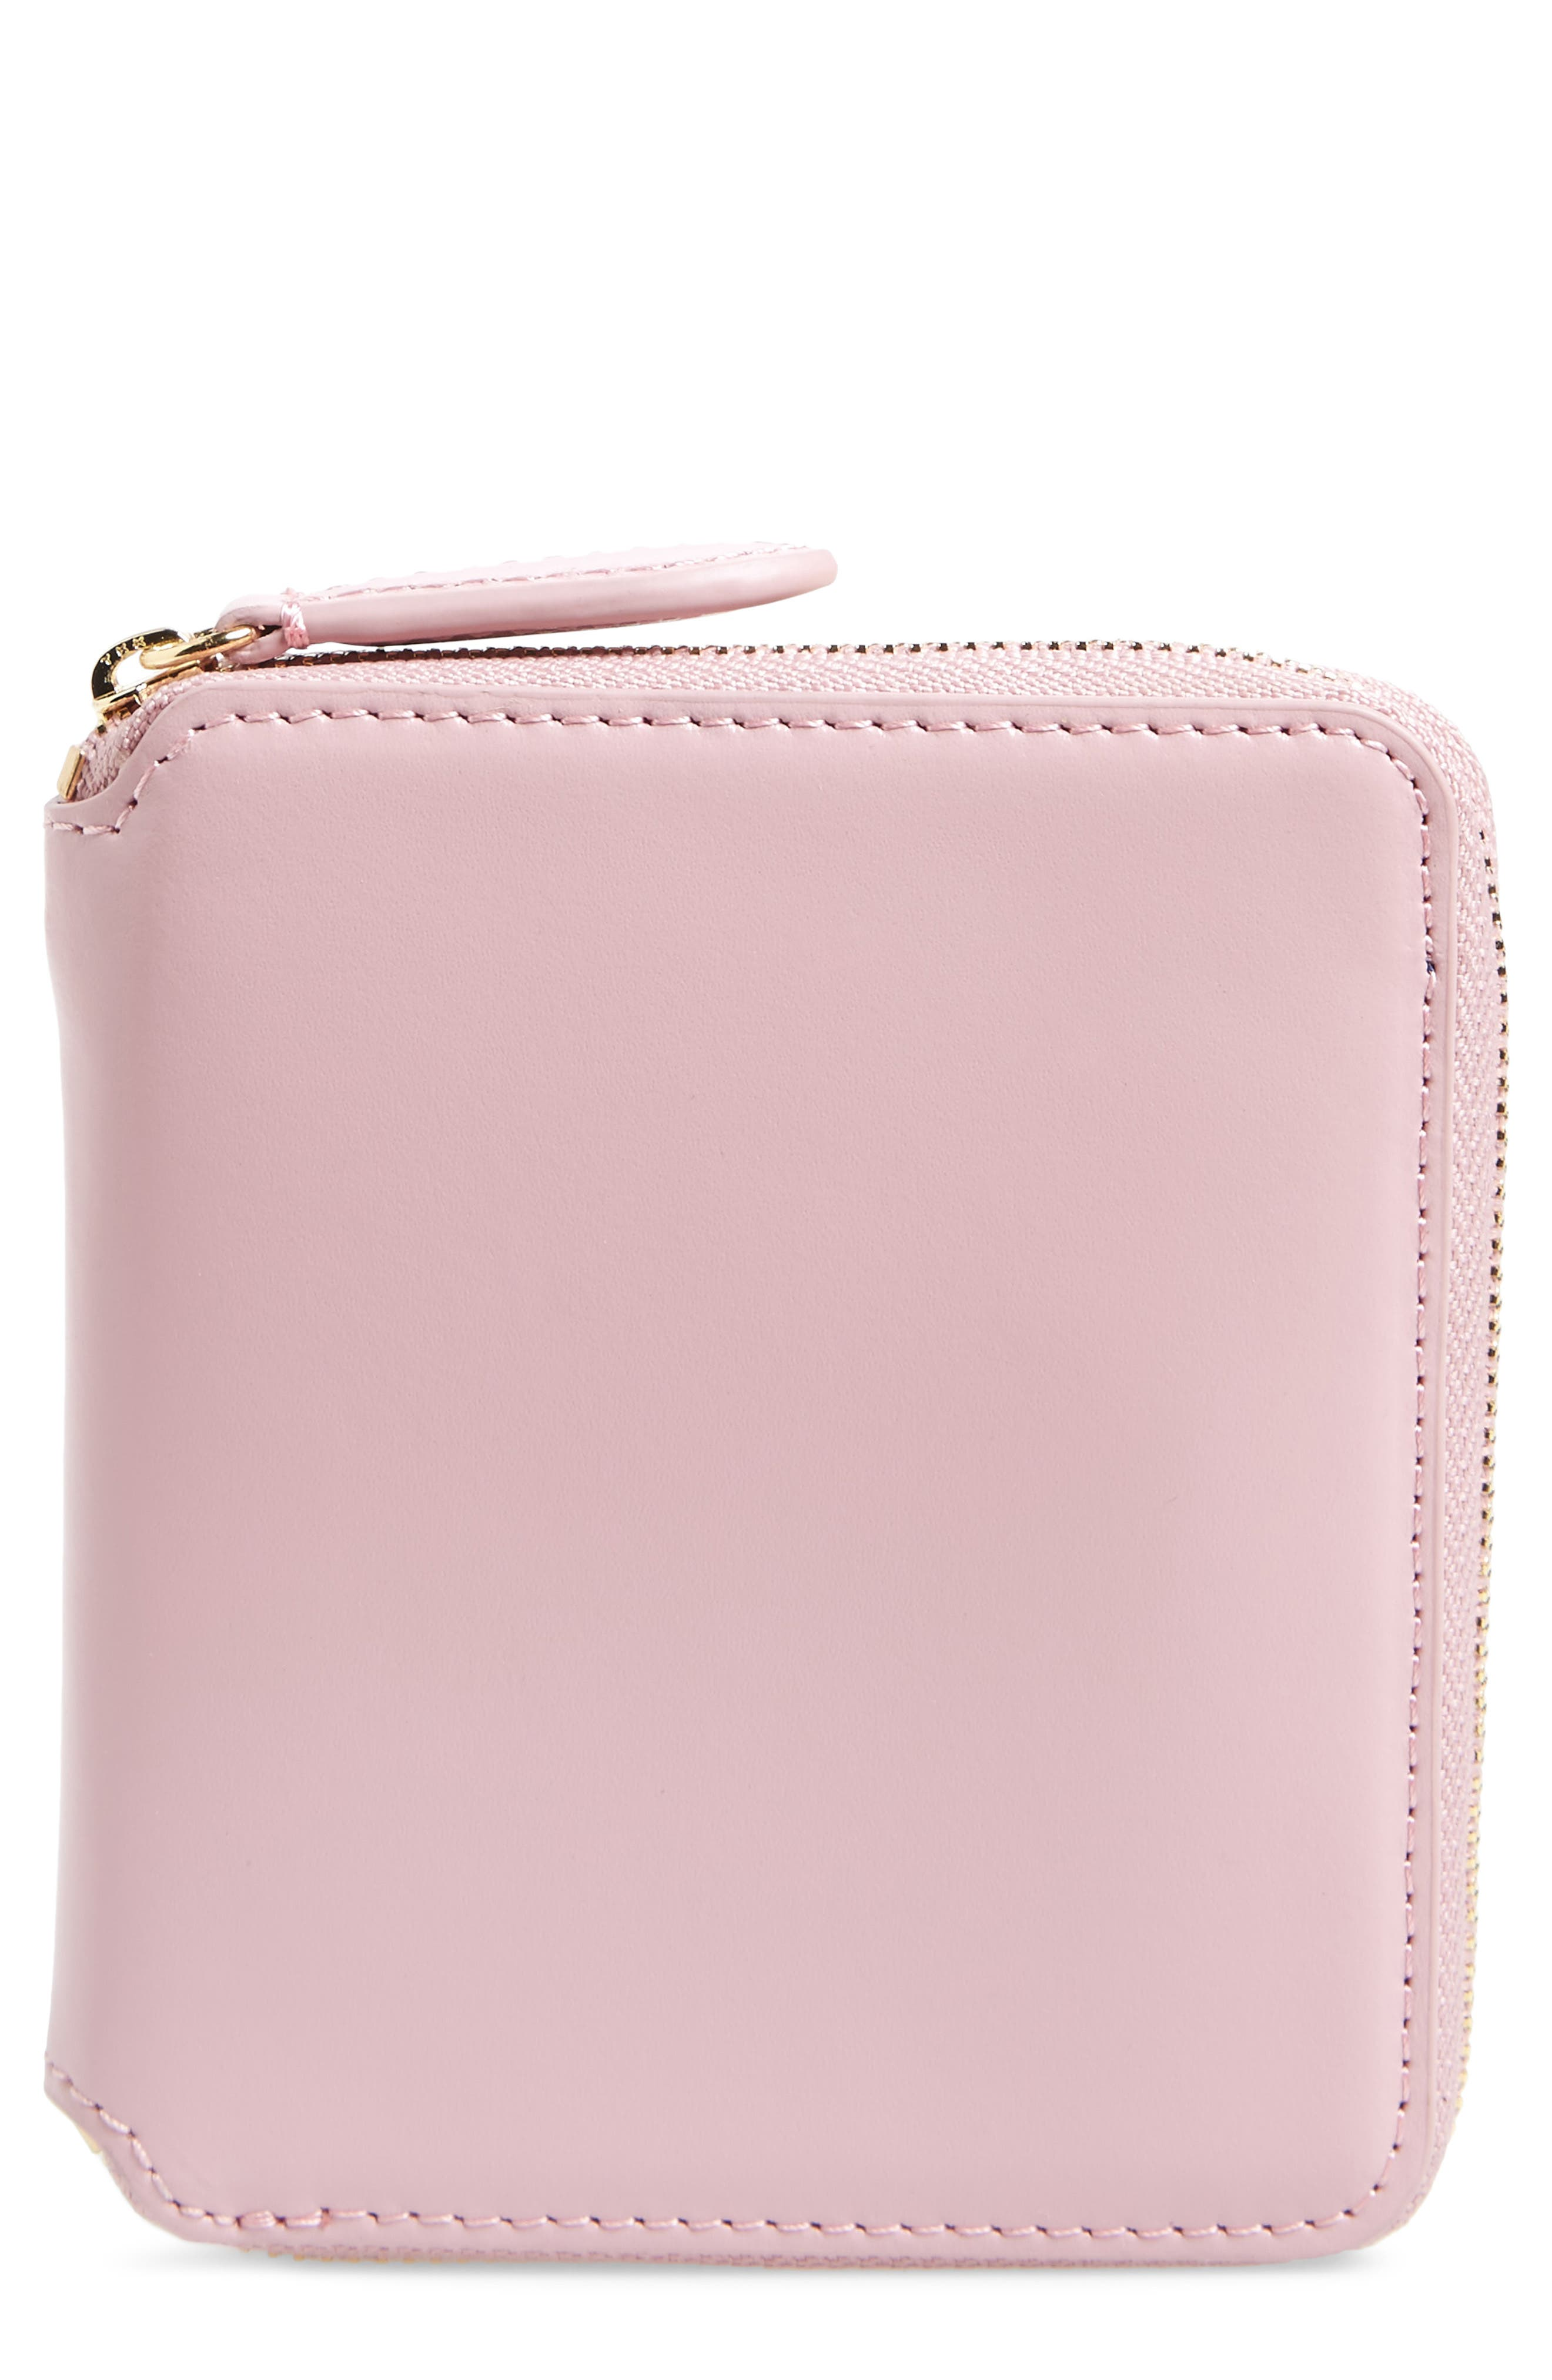 Alternate Image 1 Selected - Diane von Furstenberg Small Za Leather Wallet